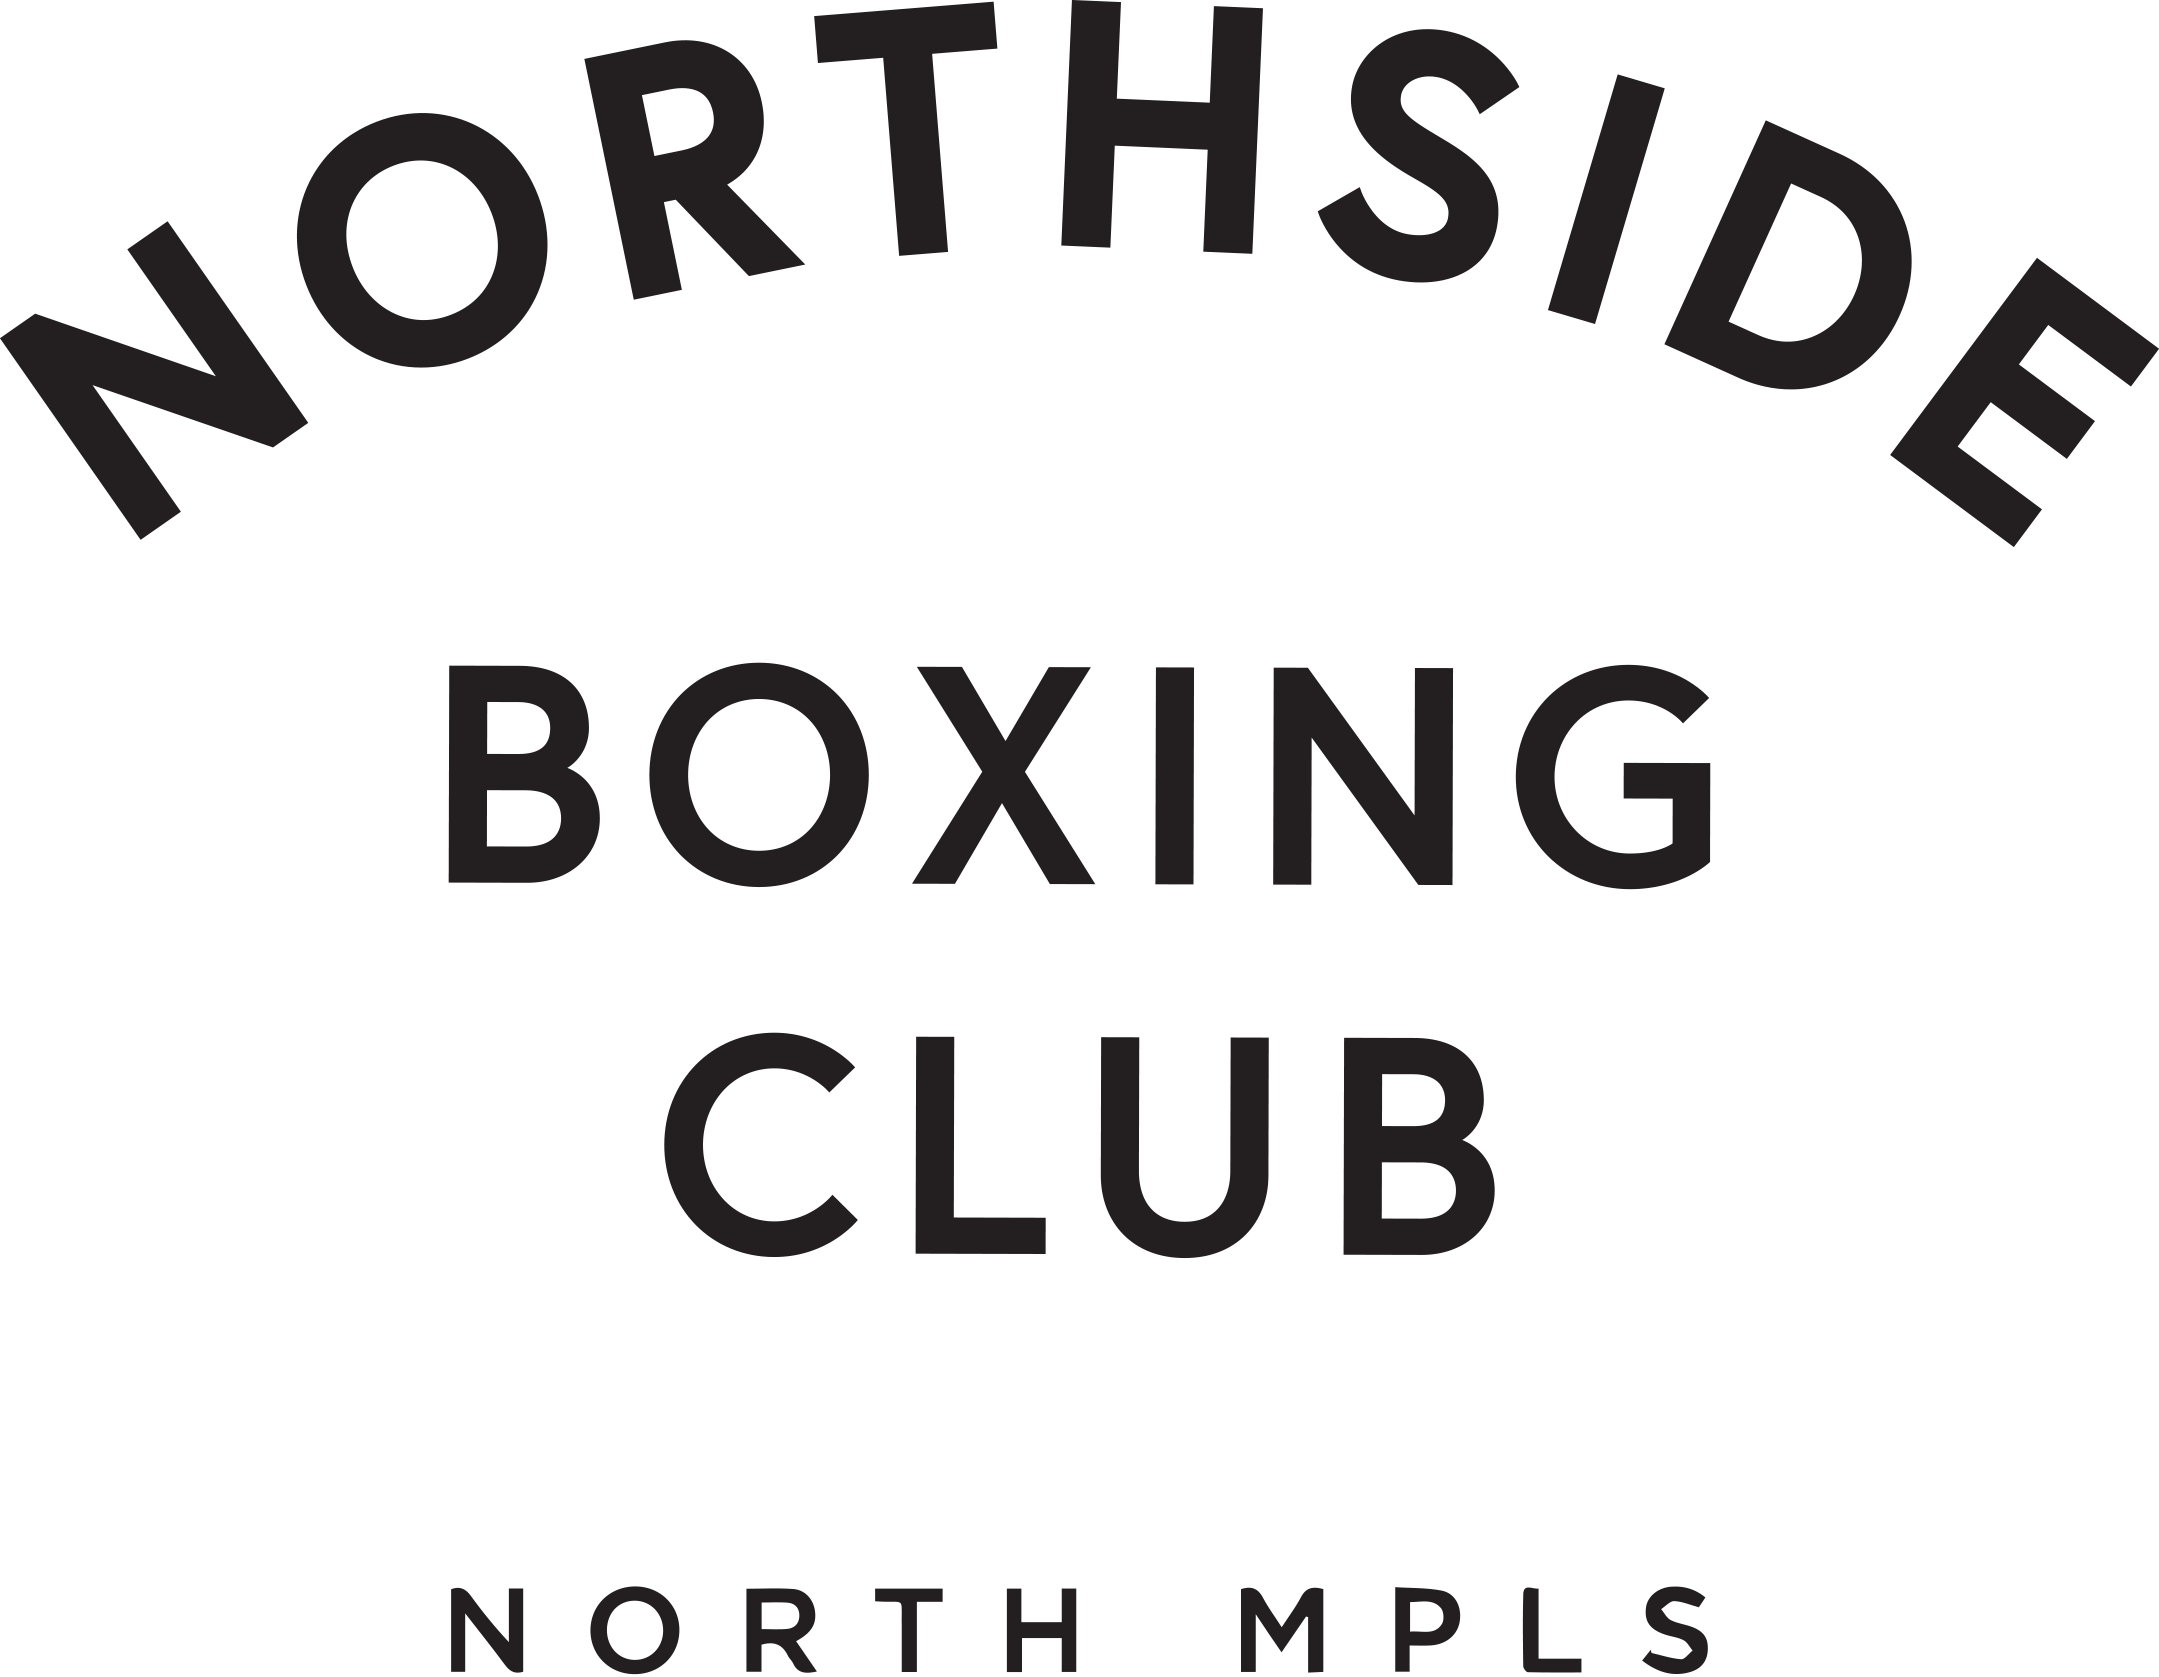 Northside Boxing Club